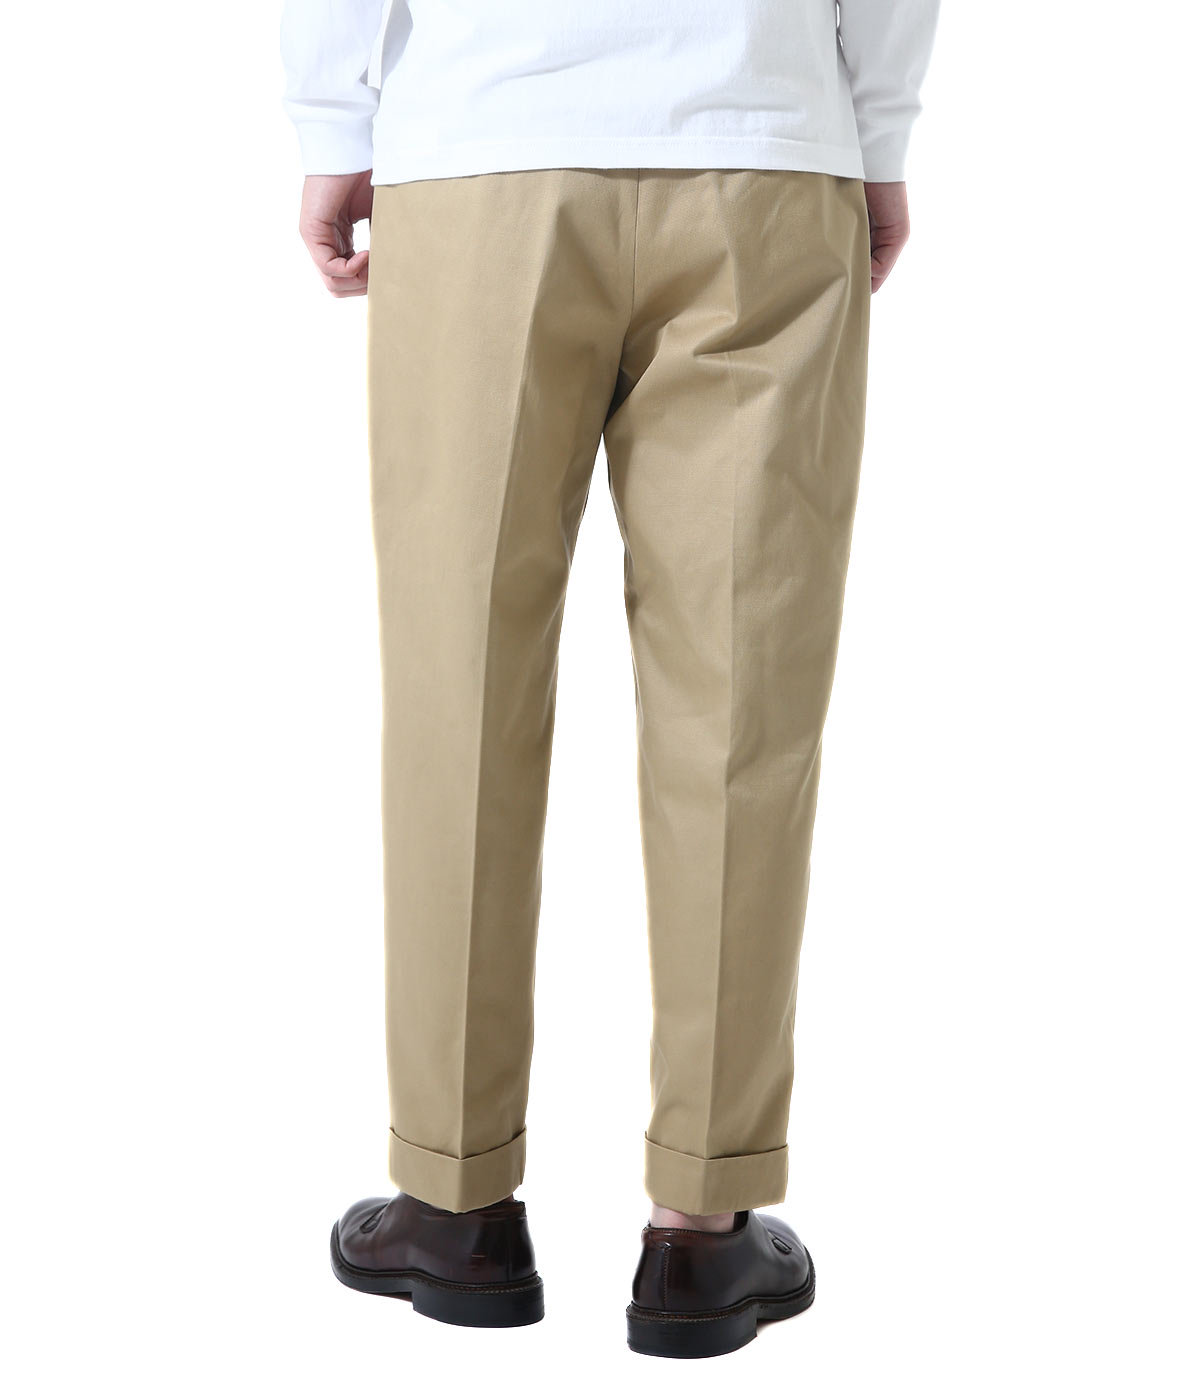 San Joaquin Cotton Chino Pleated Beltless